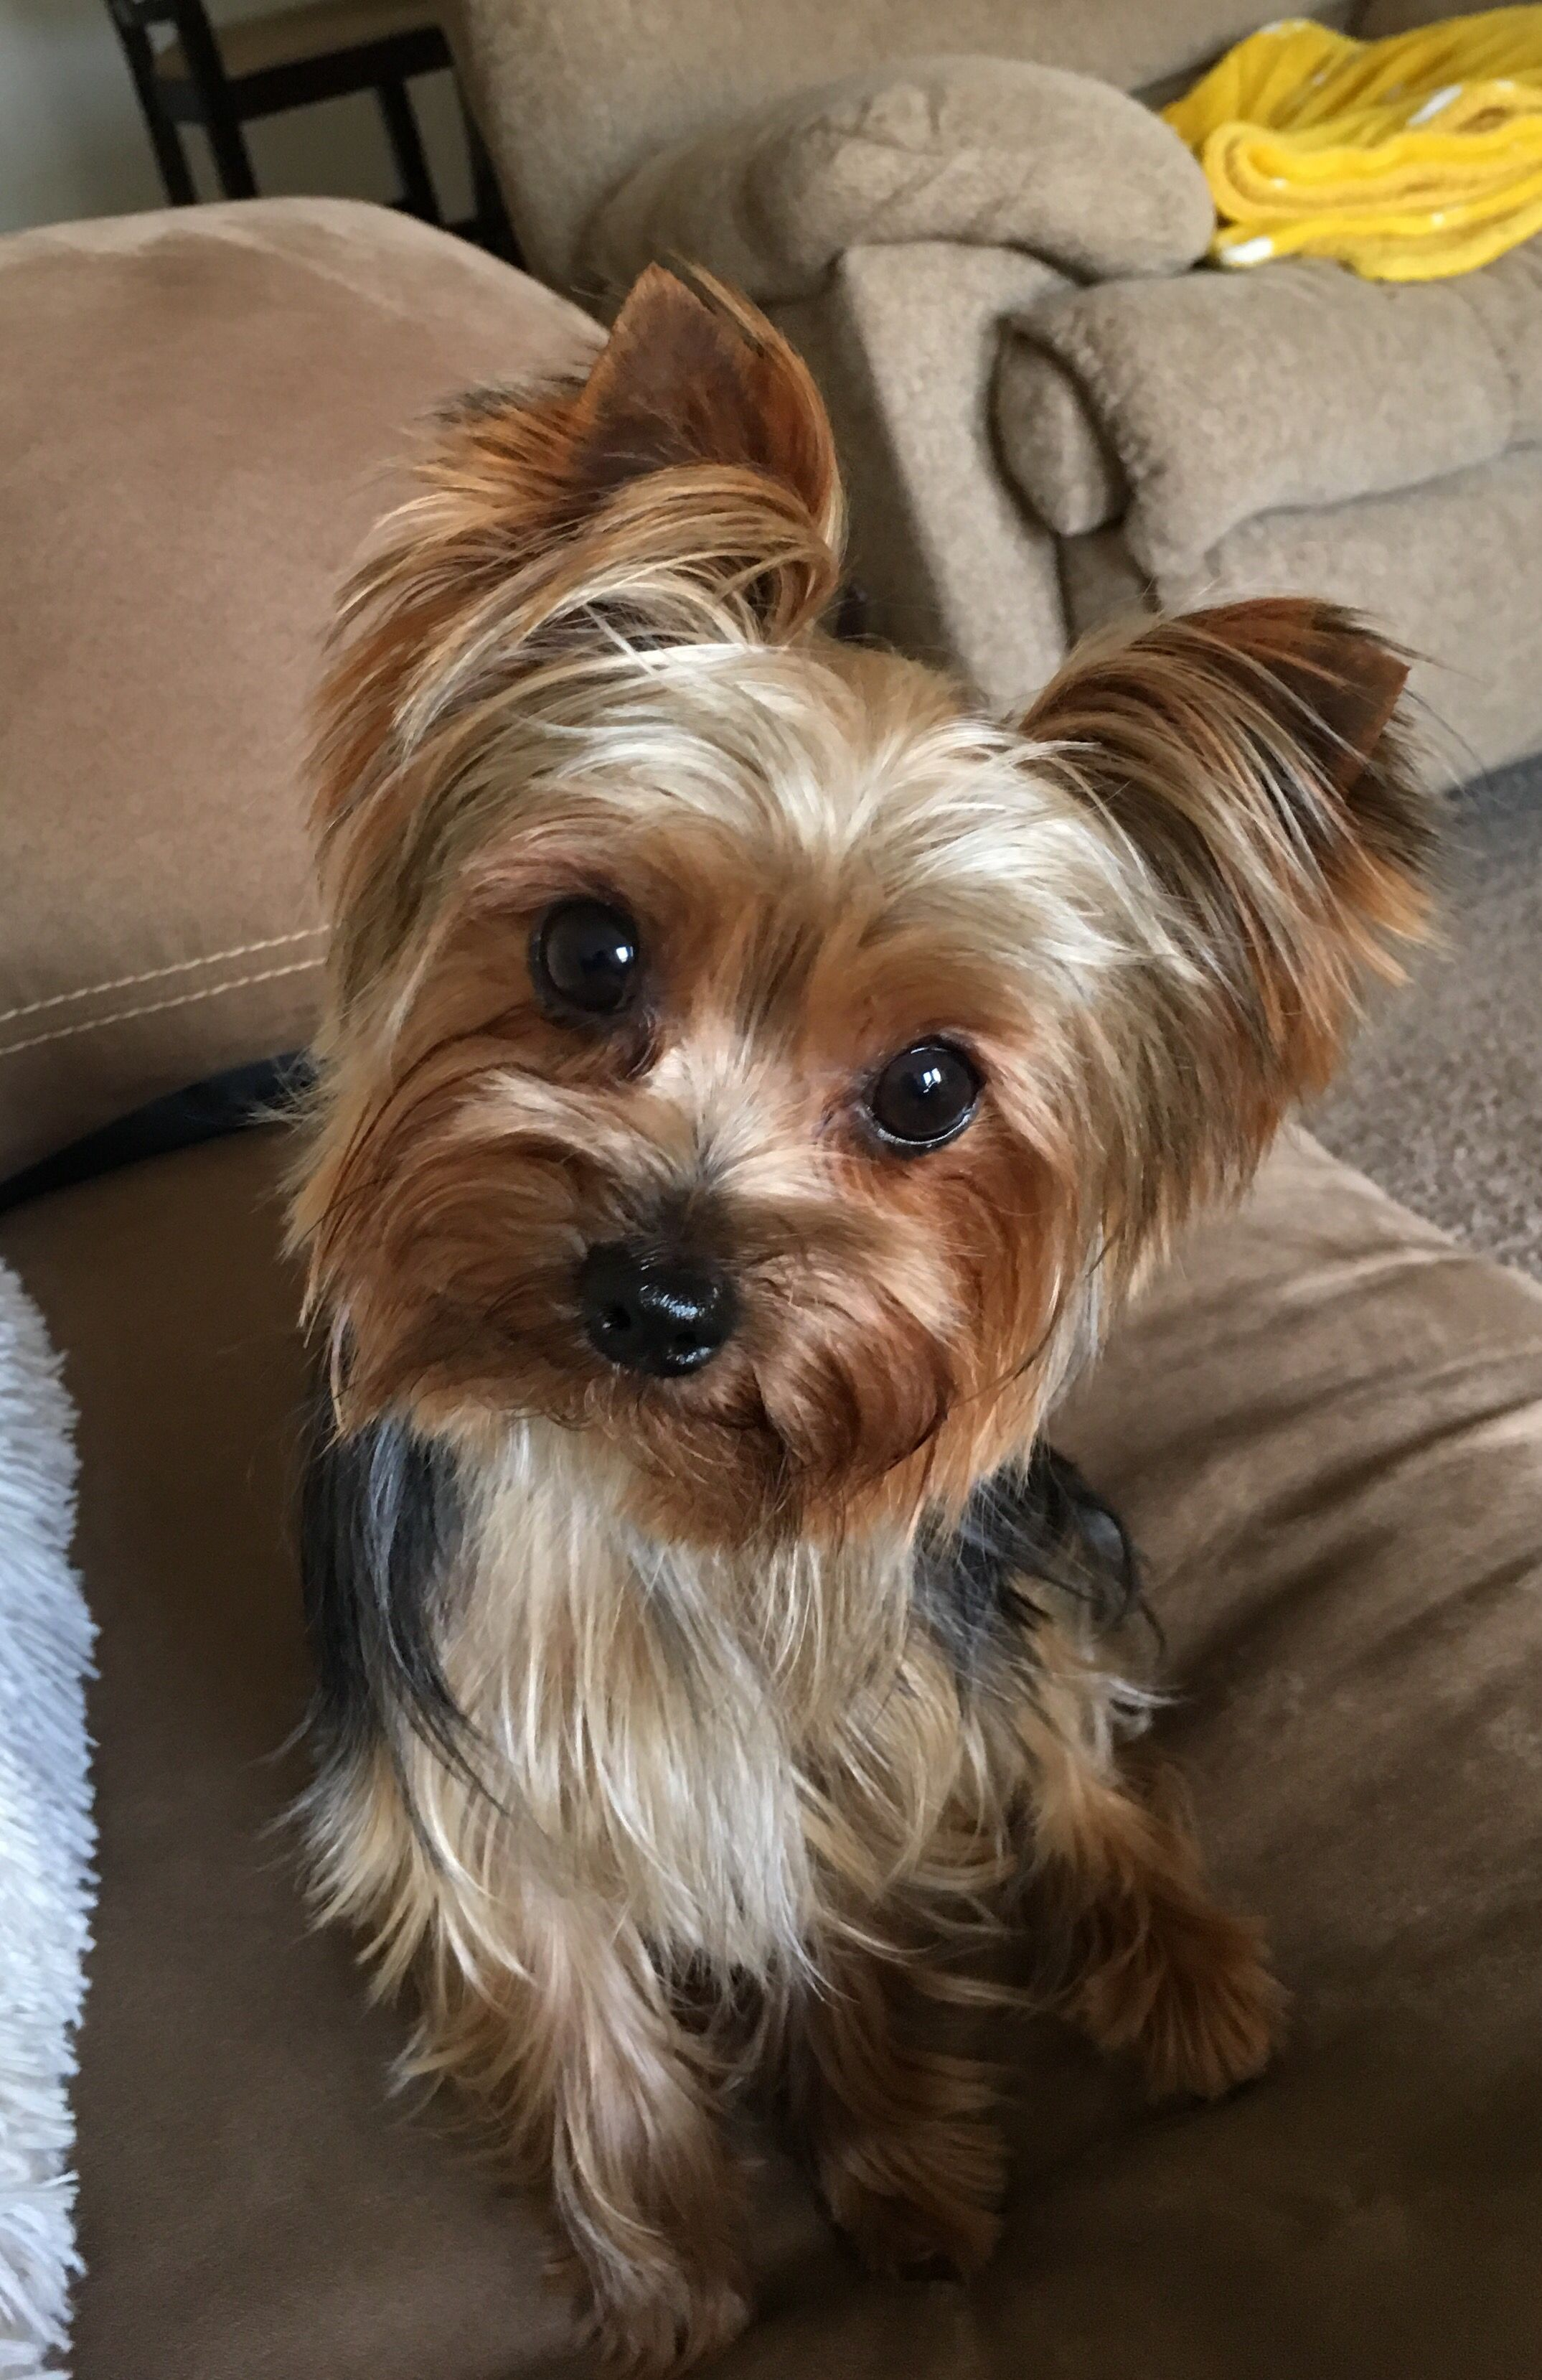 Stevie Ray Vaughan Yorkie Love Of My Life Visit Http Www Upscaledogtoys Com For Awesome Dog Toys And Yorkie Terrier Yorkshire Terrier Yorkshire Terrier Dog